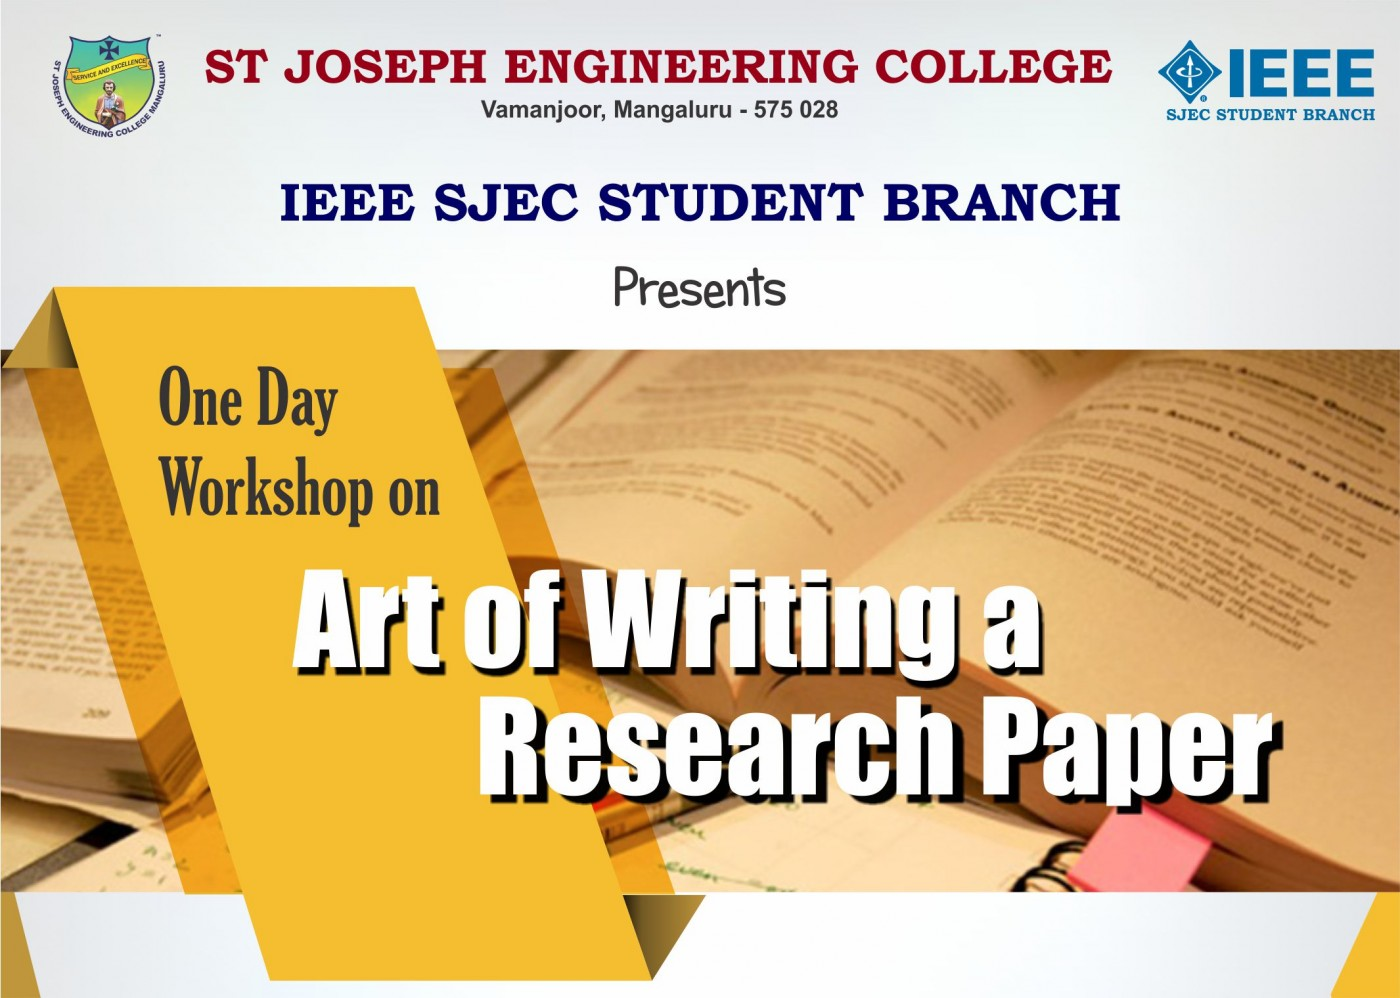 016 Writting Research Paper Workshop Dreaded A Examples Of Abstracts Apa Writing Introduction Example Sample Abstract 1400